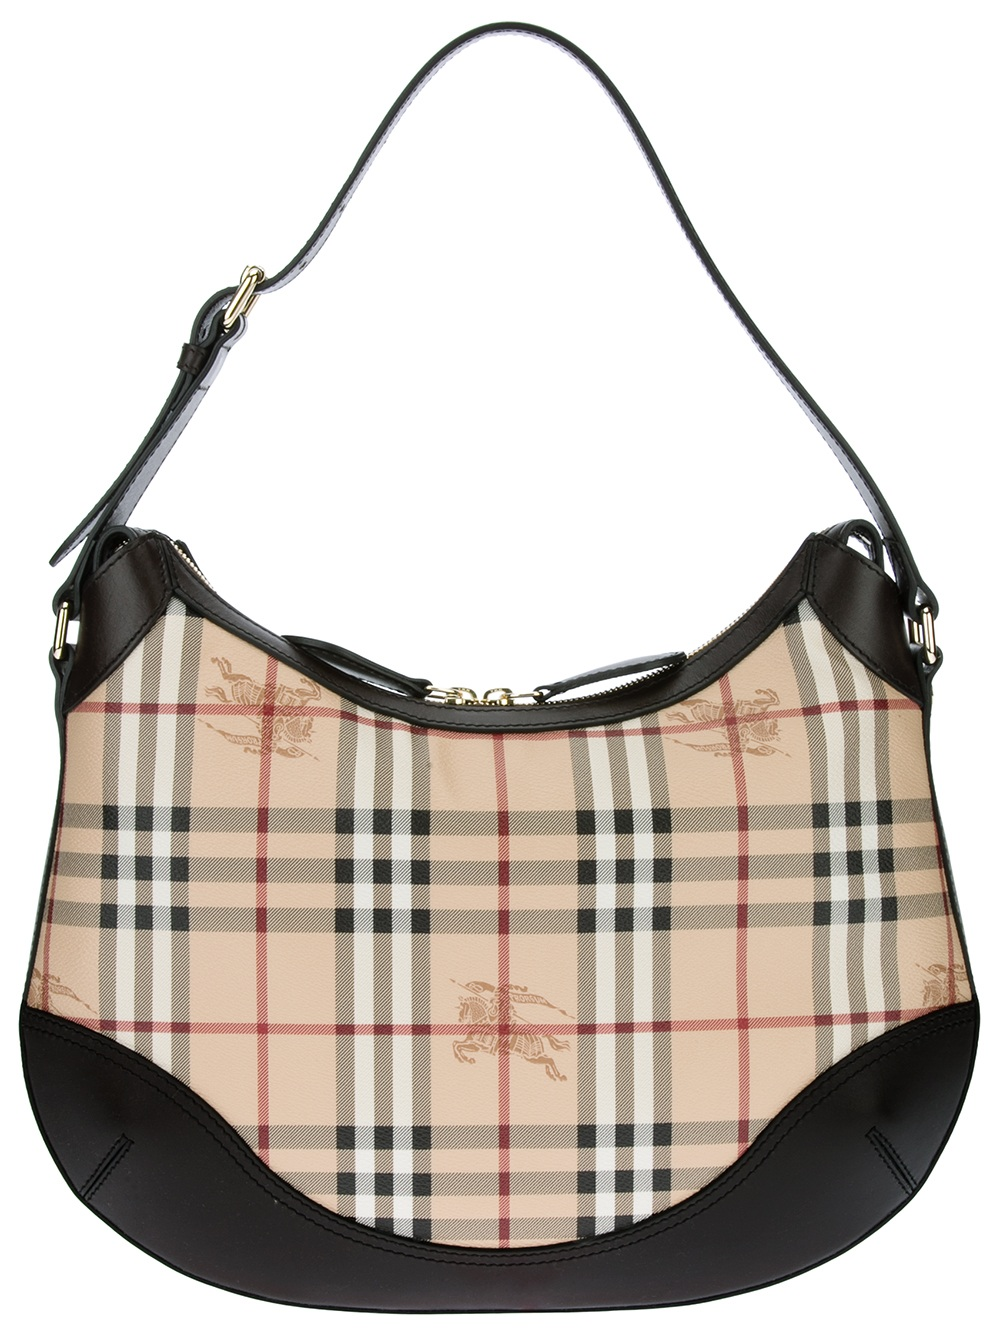 8b738859678 Burberry Classic Check Shoulder Bag in Brown - Lyst